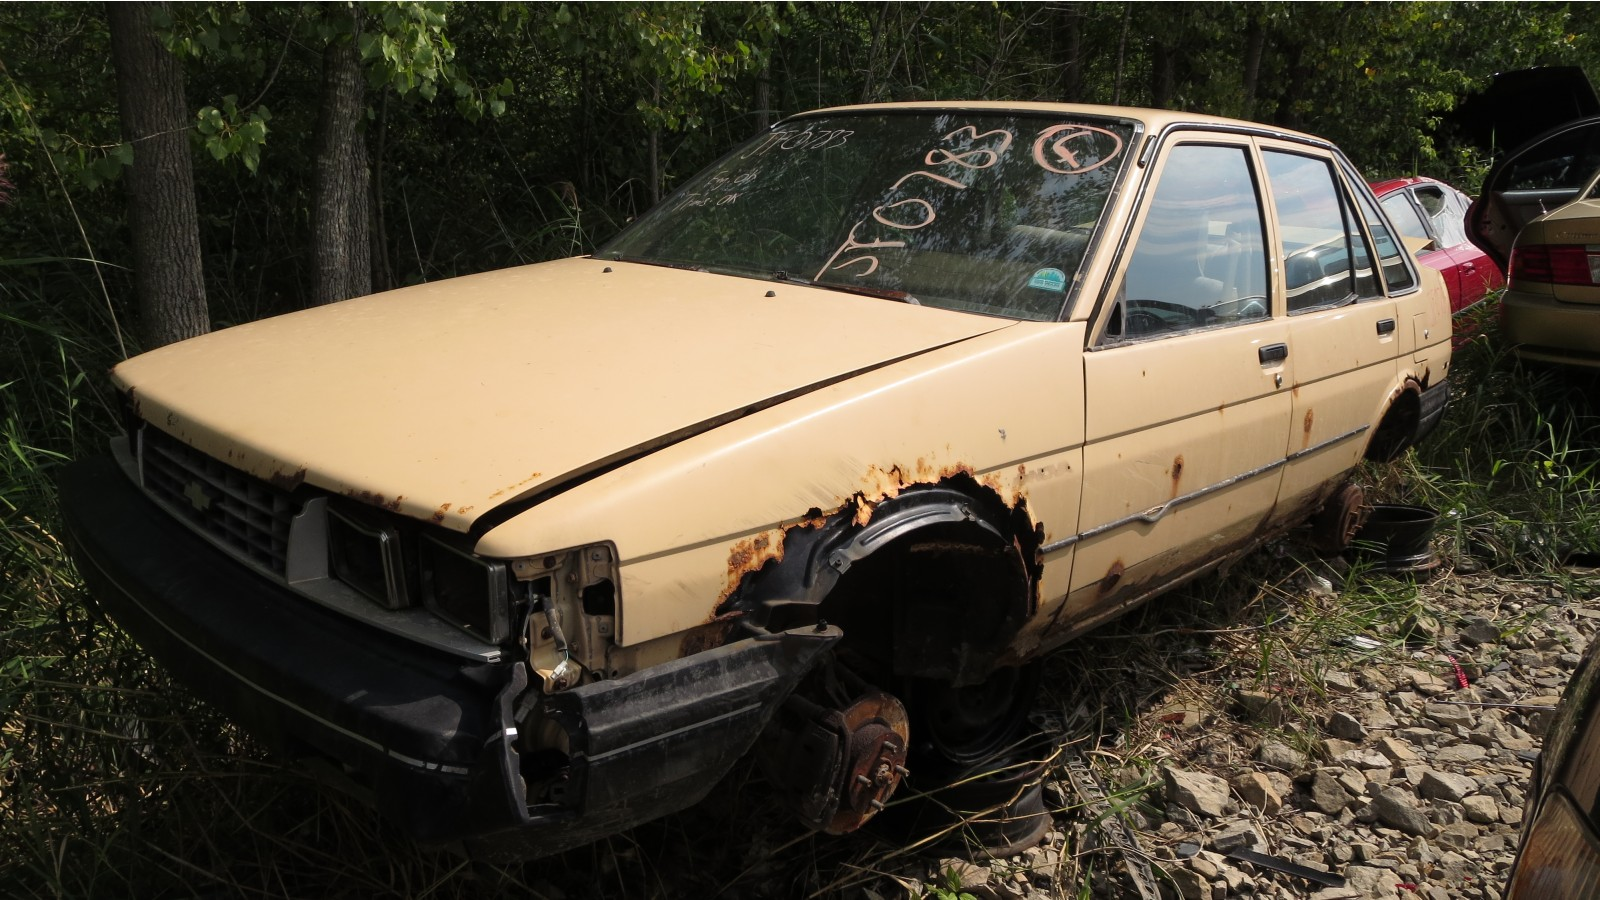 1986 chevrolet nova sedan wisconsin rust edition rh thetruthaboutcars com 1986 Chevy Nova Interior 1988 Chevy Nova Sedan